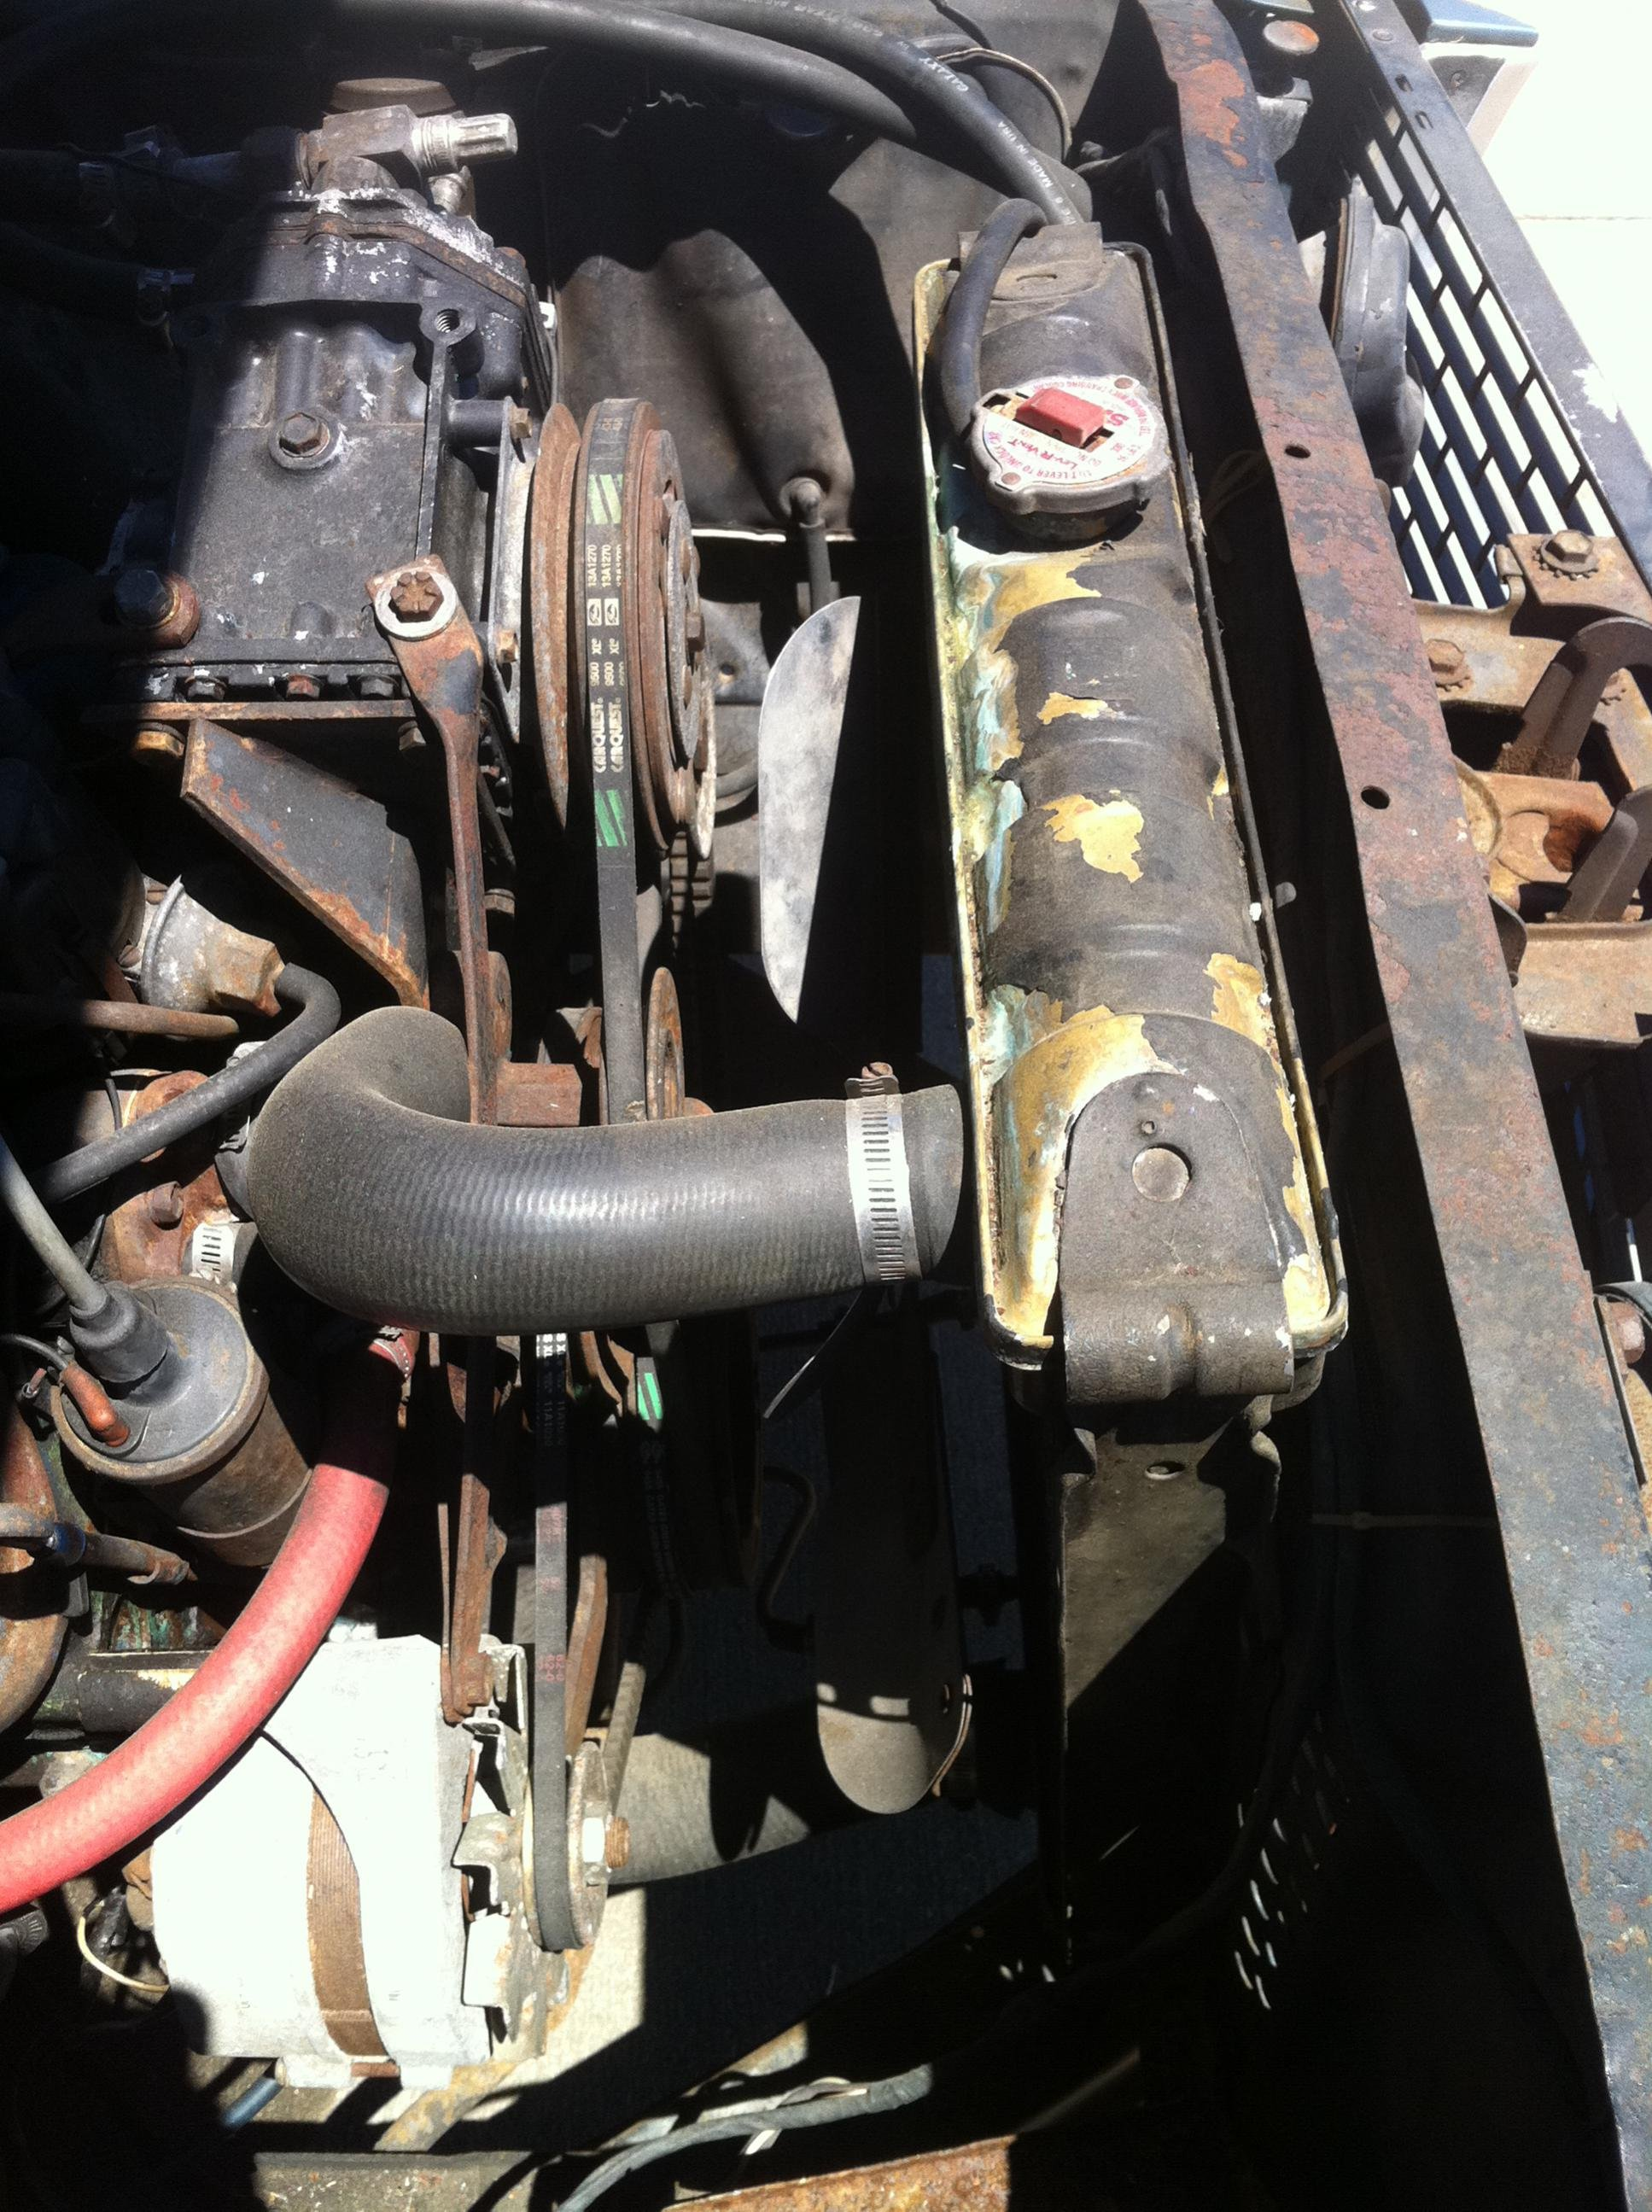 How To Use An Air Compressor >> 1966 Mustang 289 Bracket help on Air Conditioning and Power Steering - Ford Mustang Forum